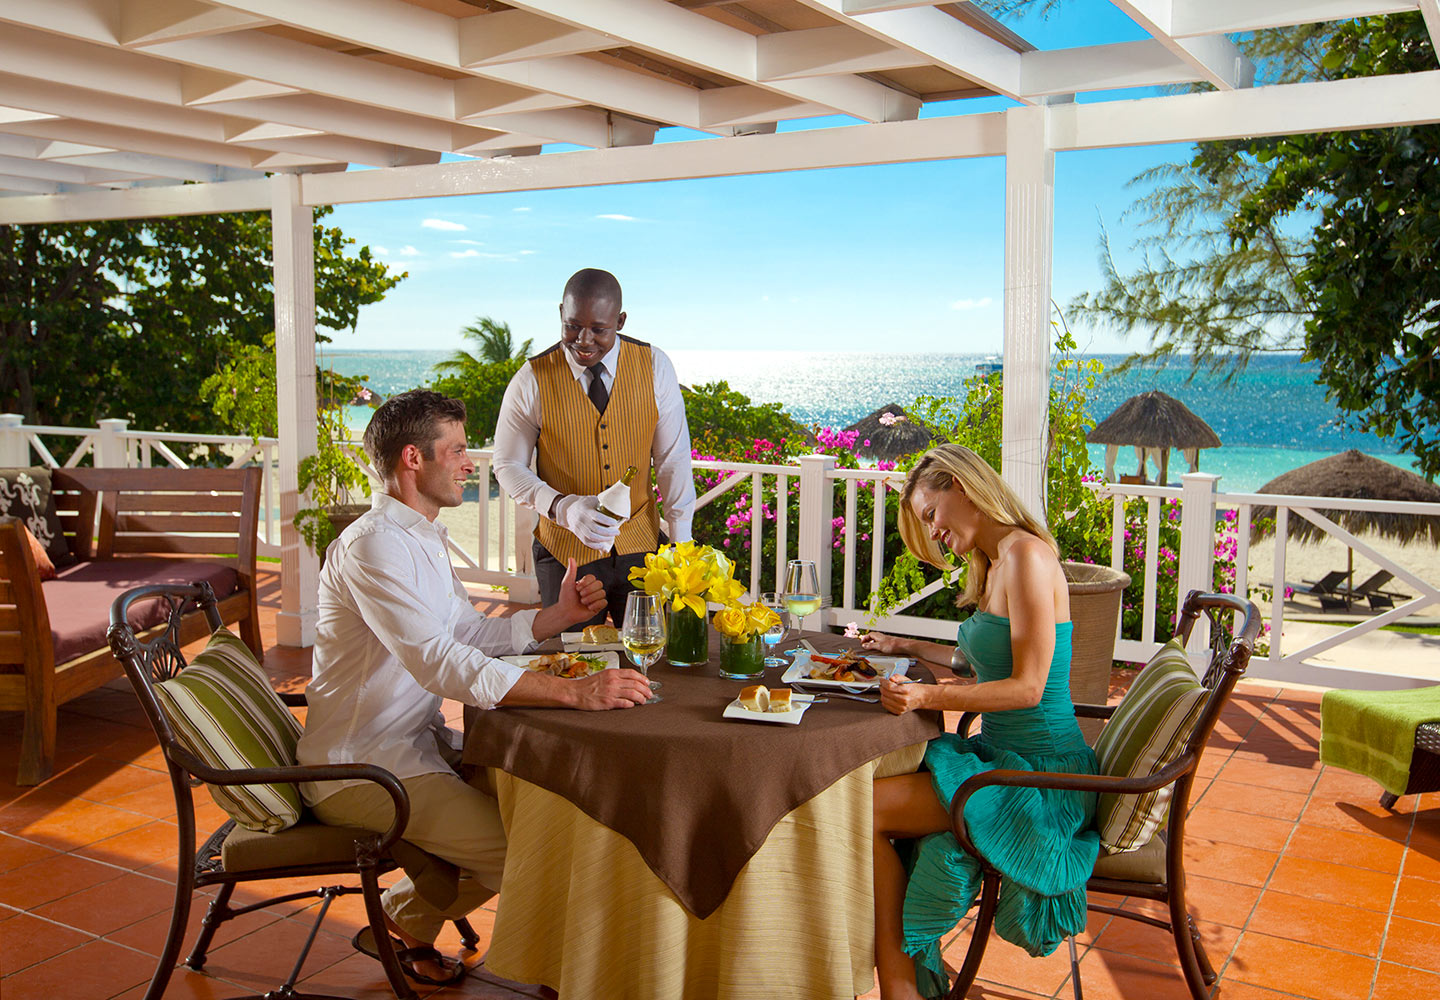 Travel Agency All-Inclusive Resort Sandals Montego Bay 080